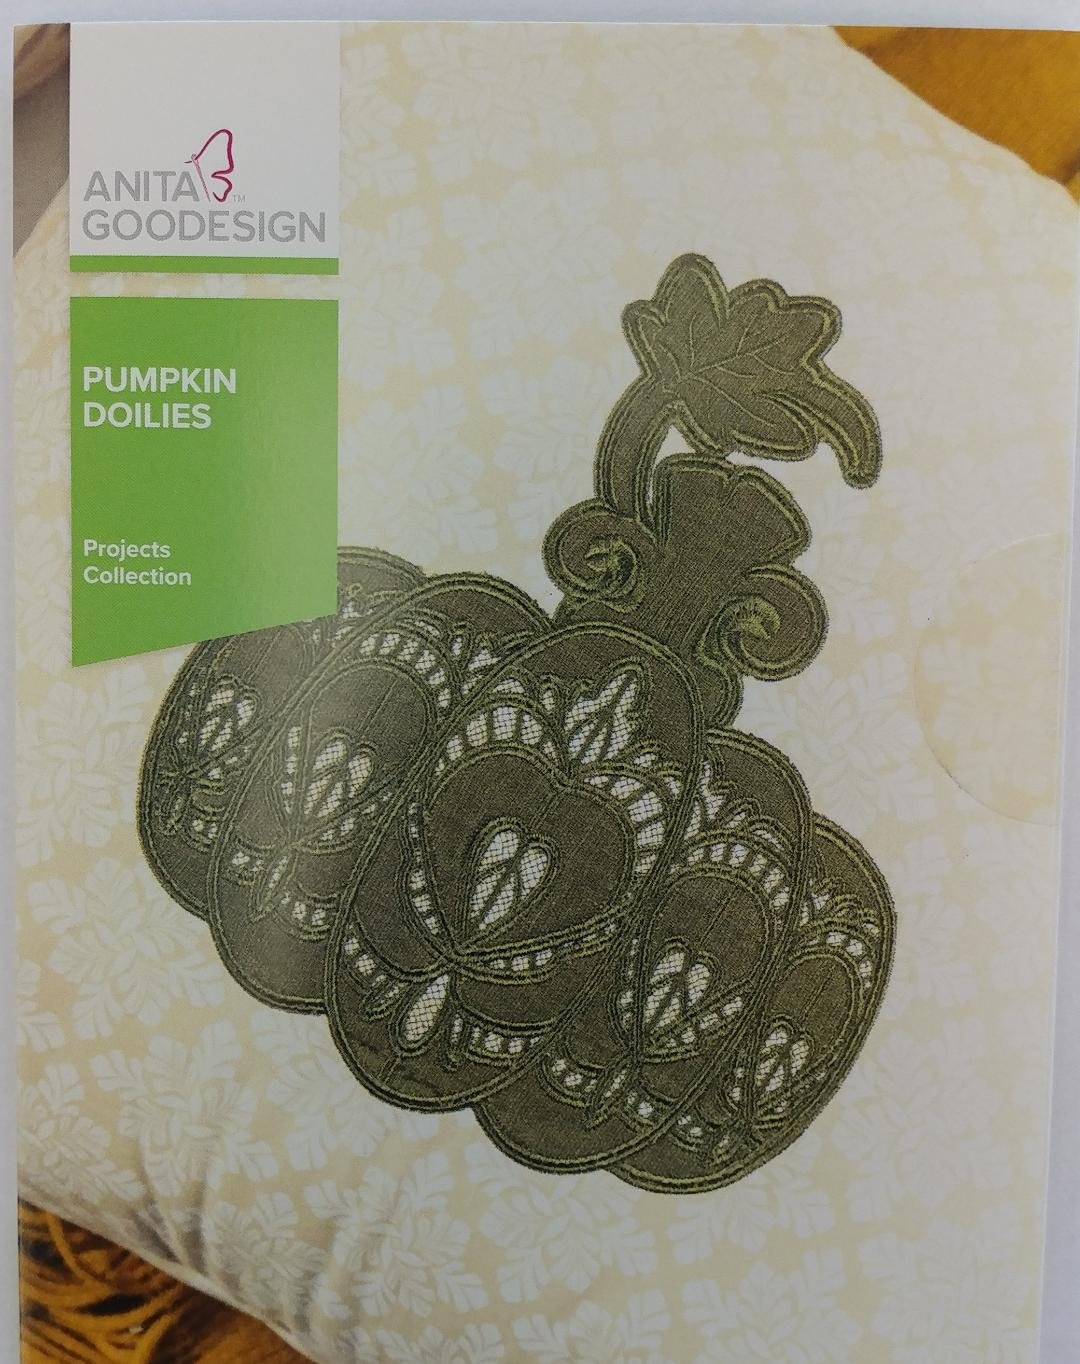 Pumpkin Doilies Projects Collection